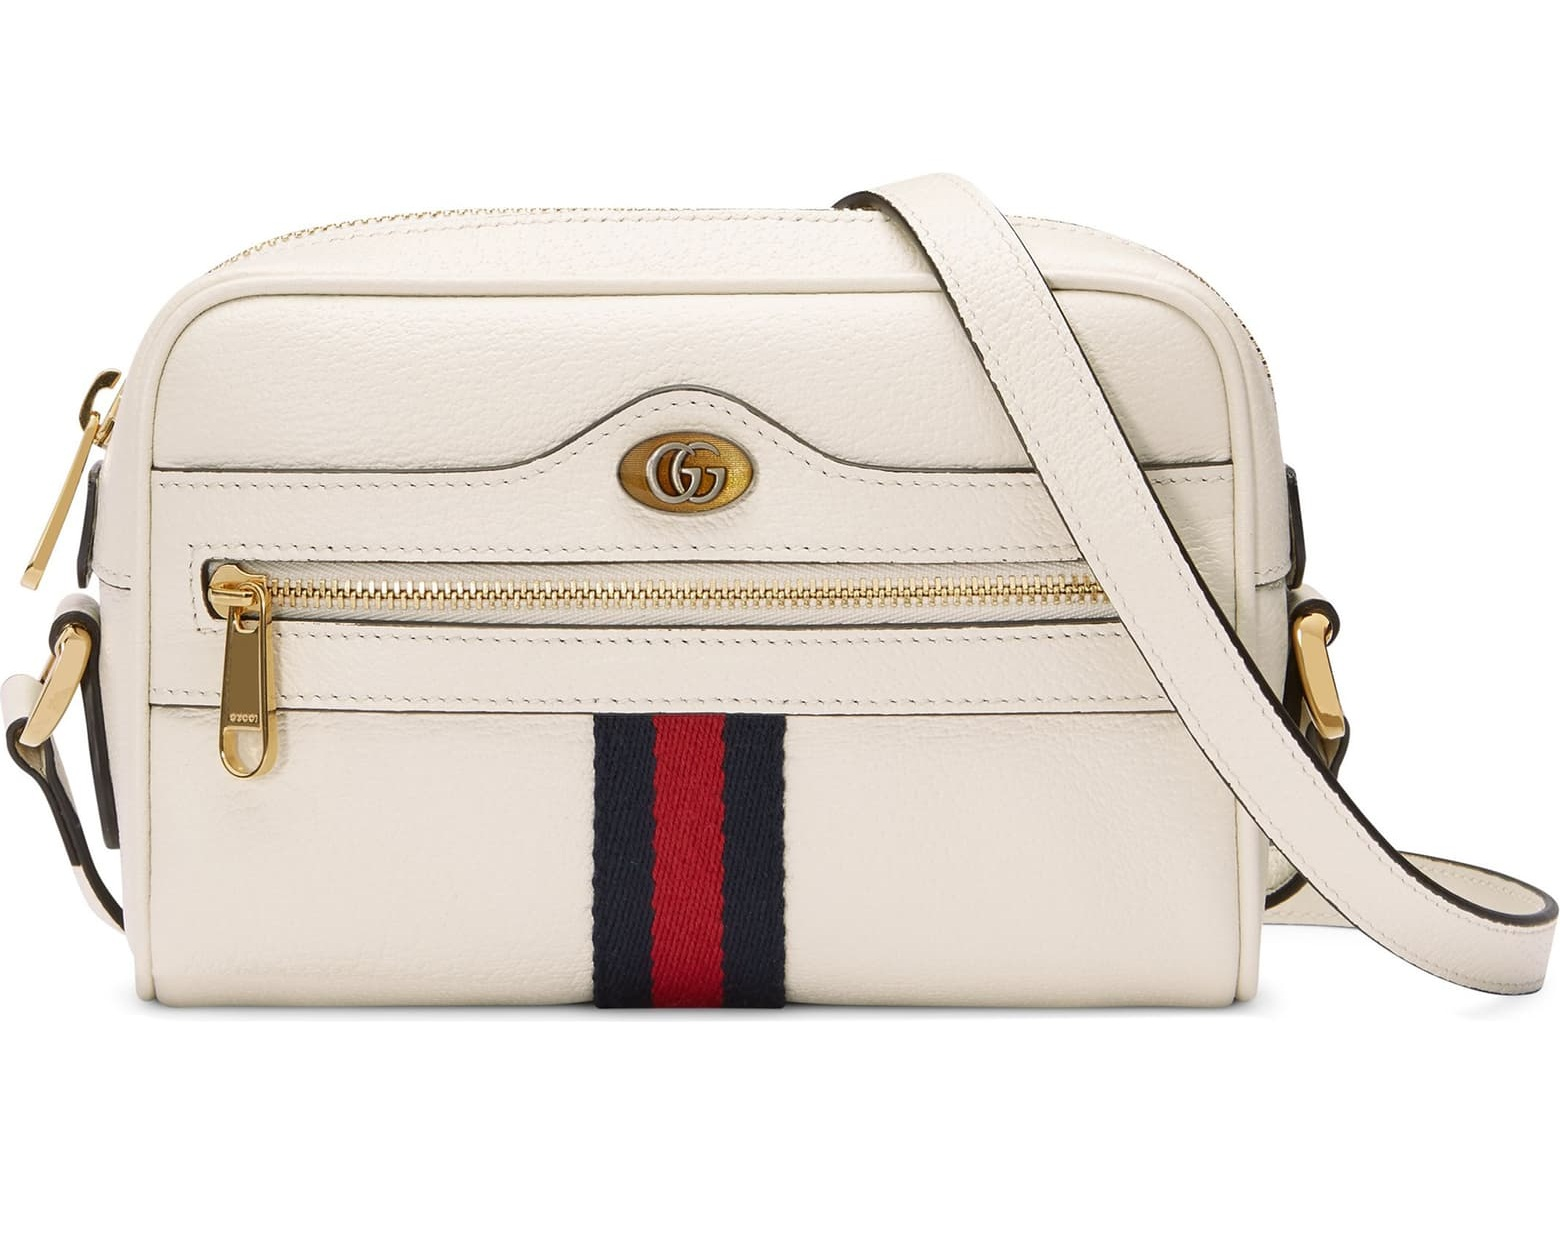 """ophidia"" bag - Mini leather crossbody Gucci bag, $990; Nordstrom"